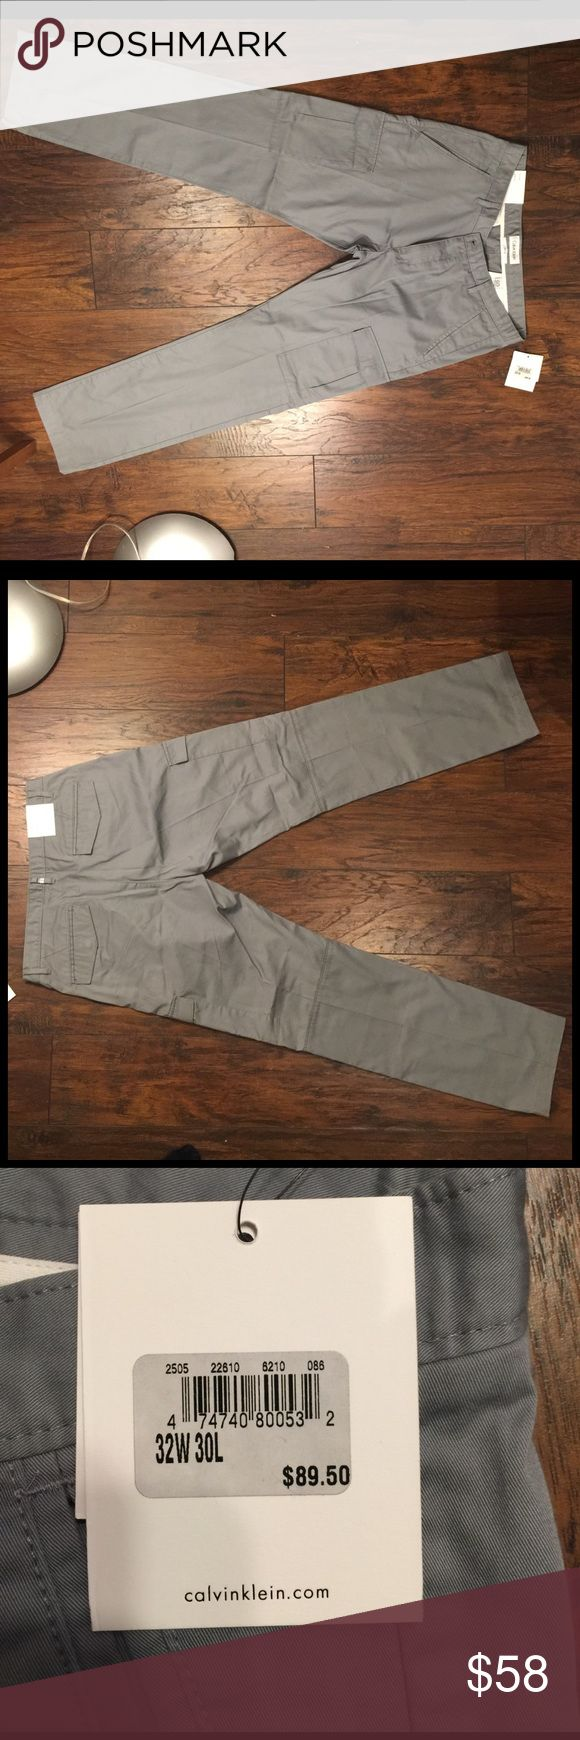 NWT Calvin Klein Men's Body Slim Fit Cargo Pants Beautiful Calvin Klein Grey Cargo pants. Brand new never worn. Part of the 2015 S/S collection. Measures 32W 30L. Retail is $89.50. Make me an Offer! Calvin Klein Pants Cargo